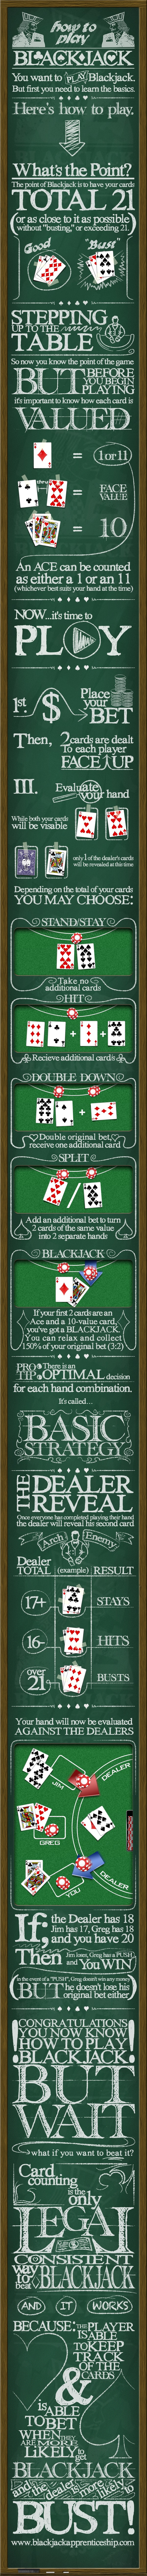 como-jugar-y-ganar-al-blackjack